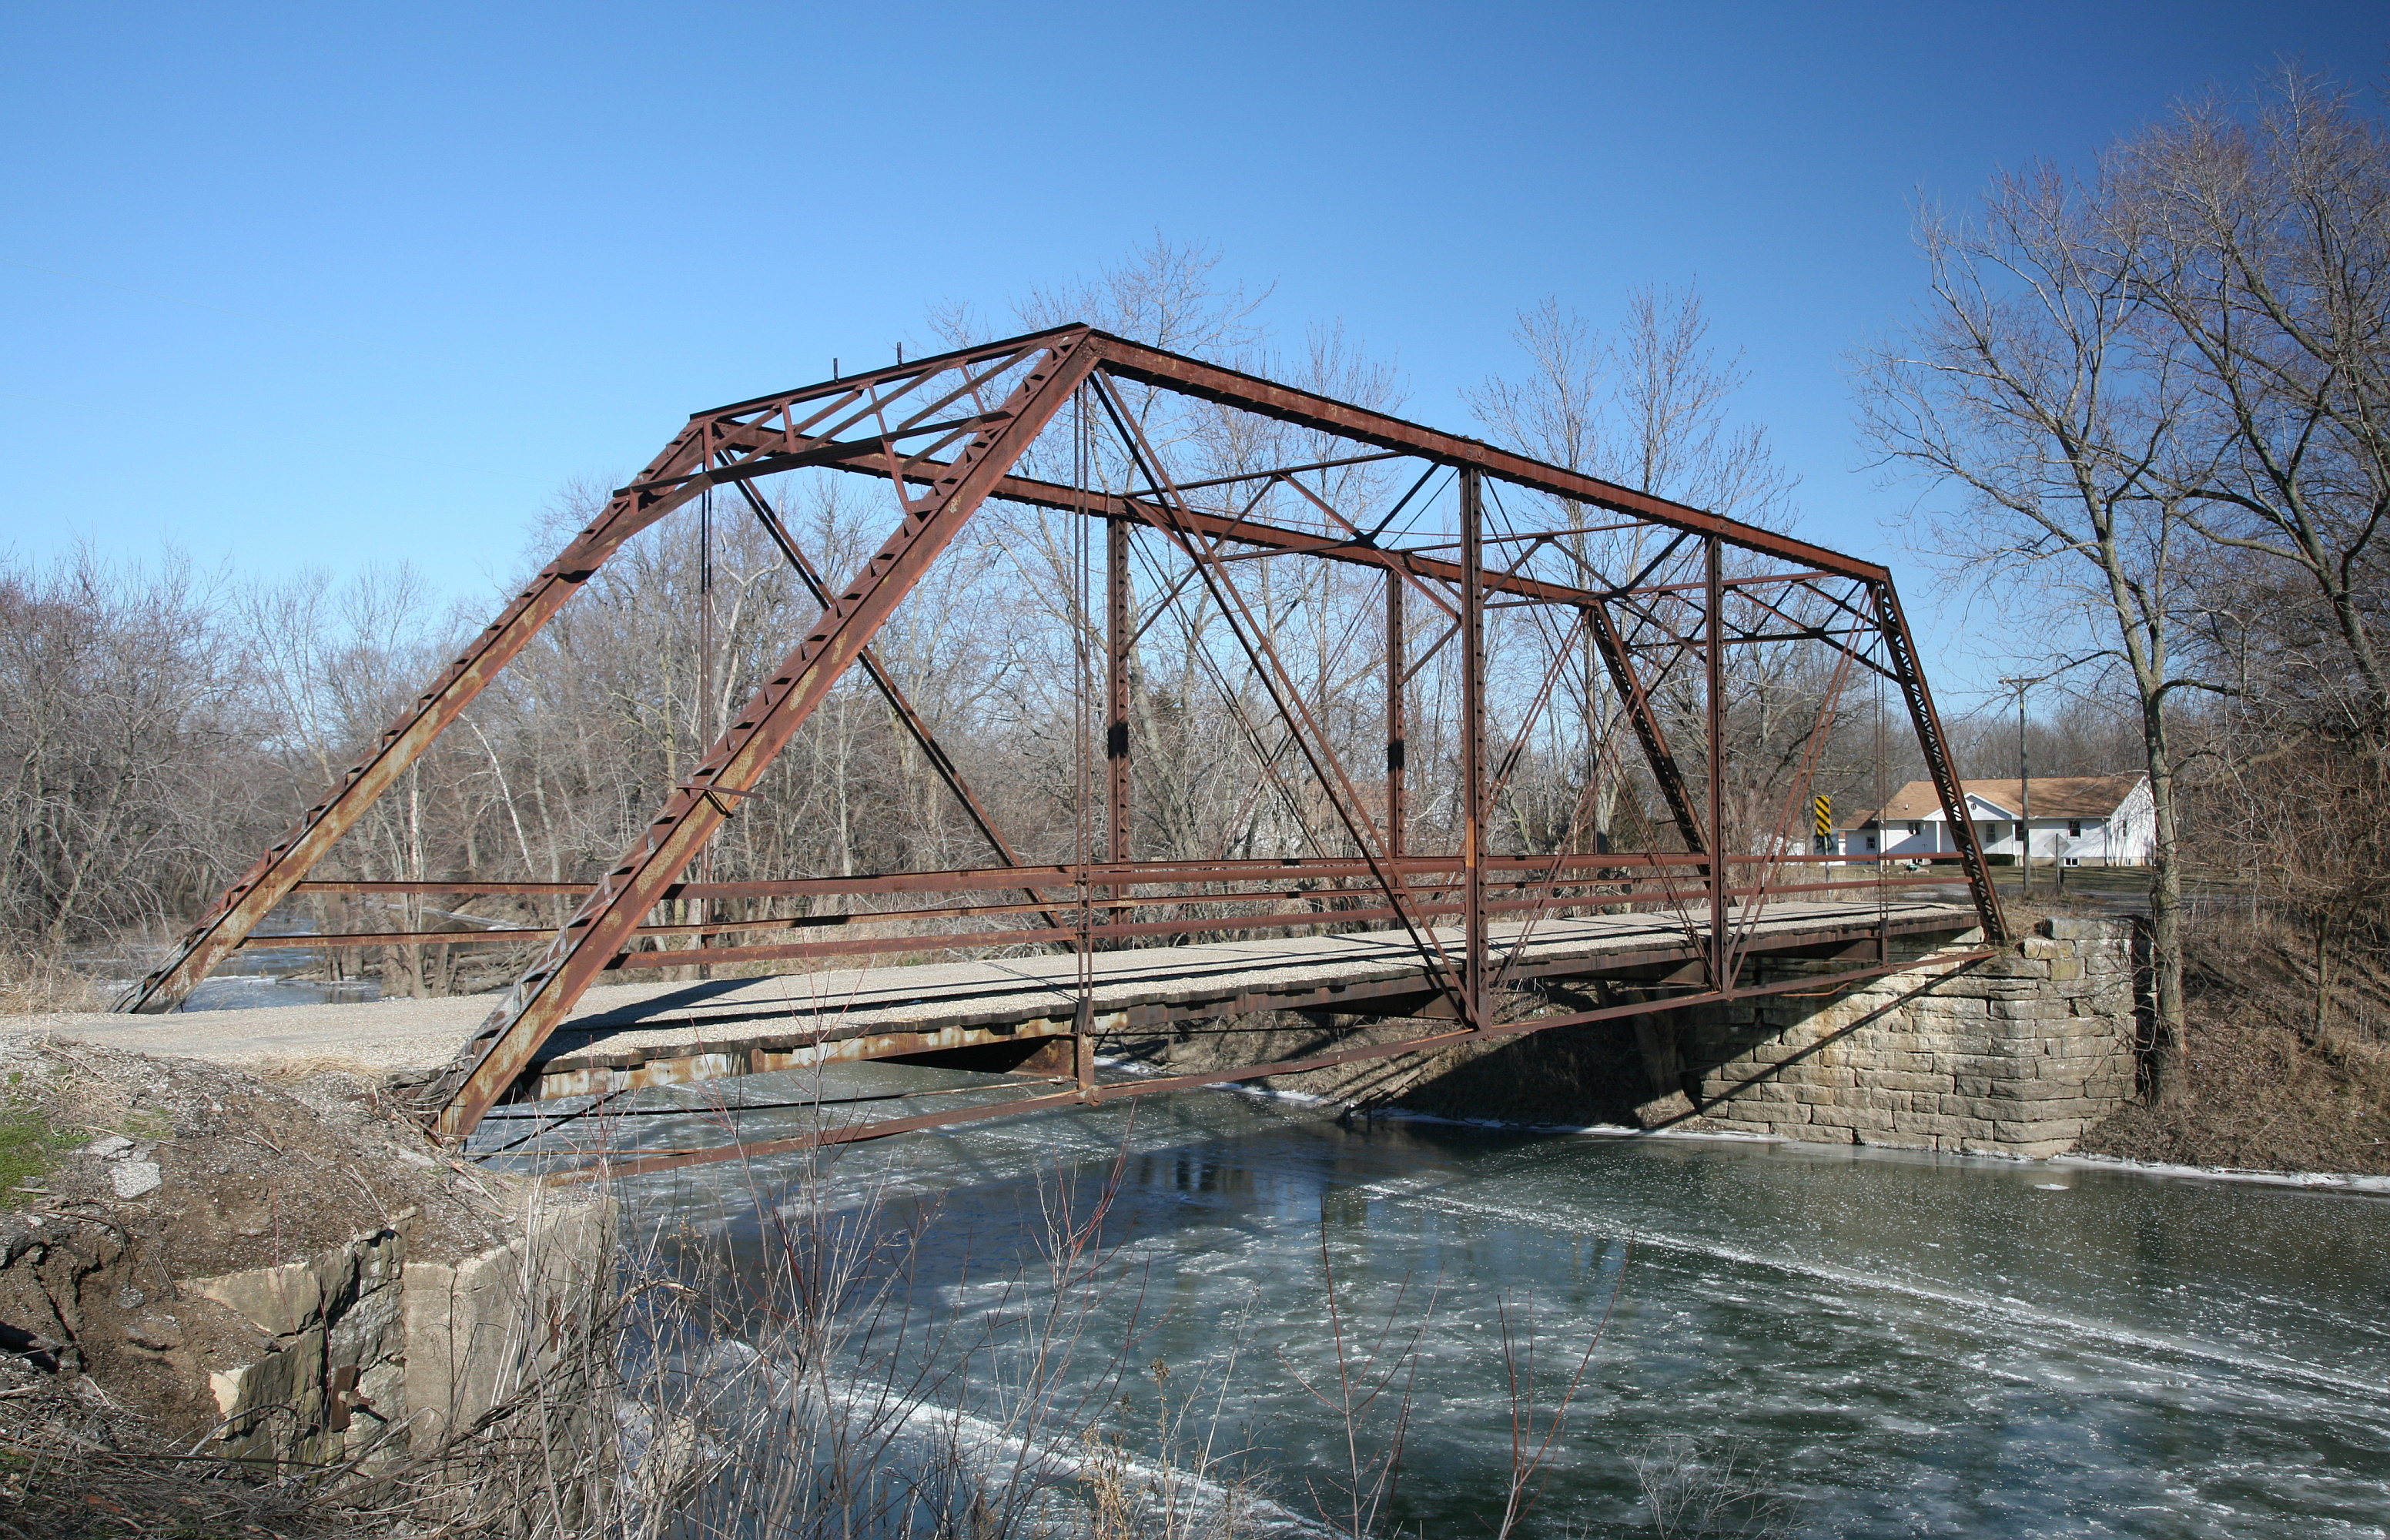 the physics of a truss bridge The bridge whose load bearing superstructures are composed of trusses, and the arrangement of linked element creating triangular unit is referred to as truss bridge the linked element normally straight might be stressed from compression, tension or most times both in reply to lively loads.